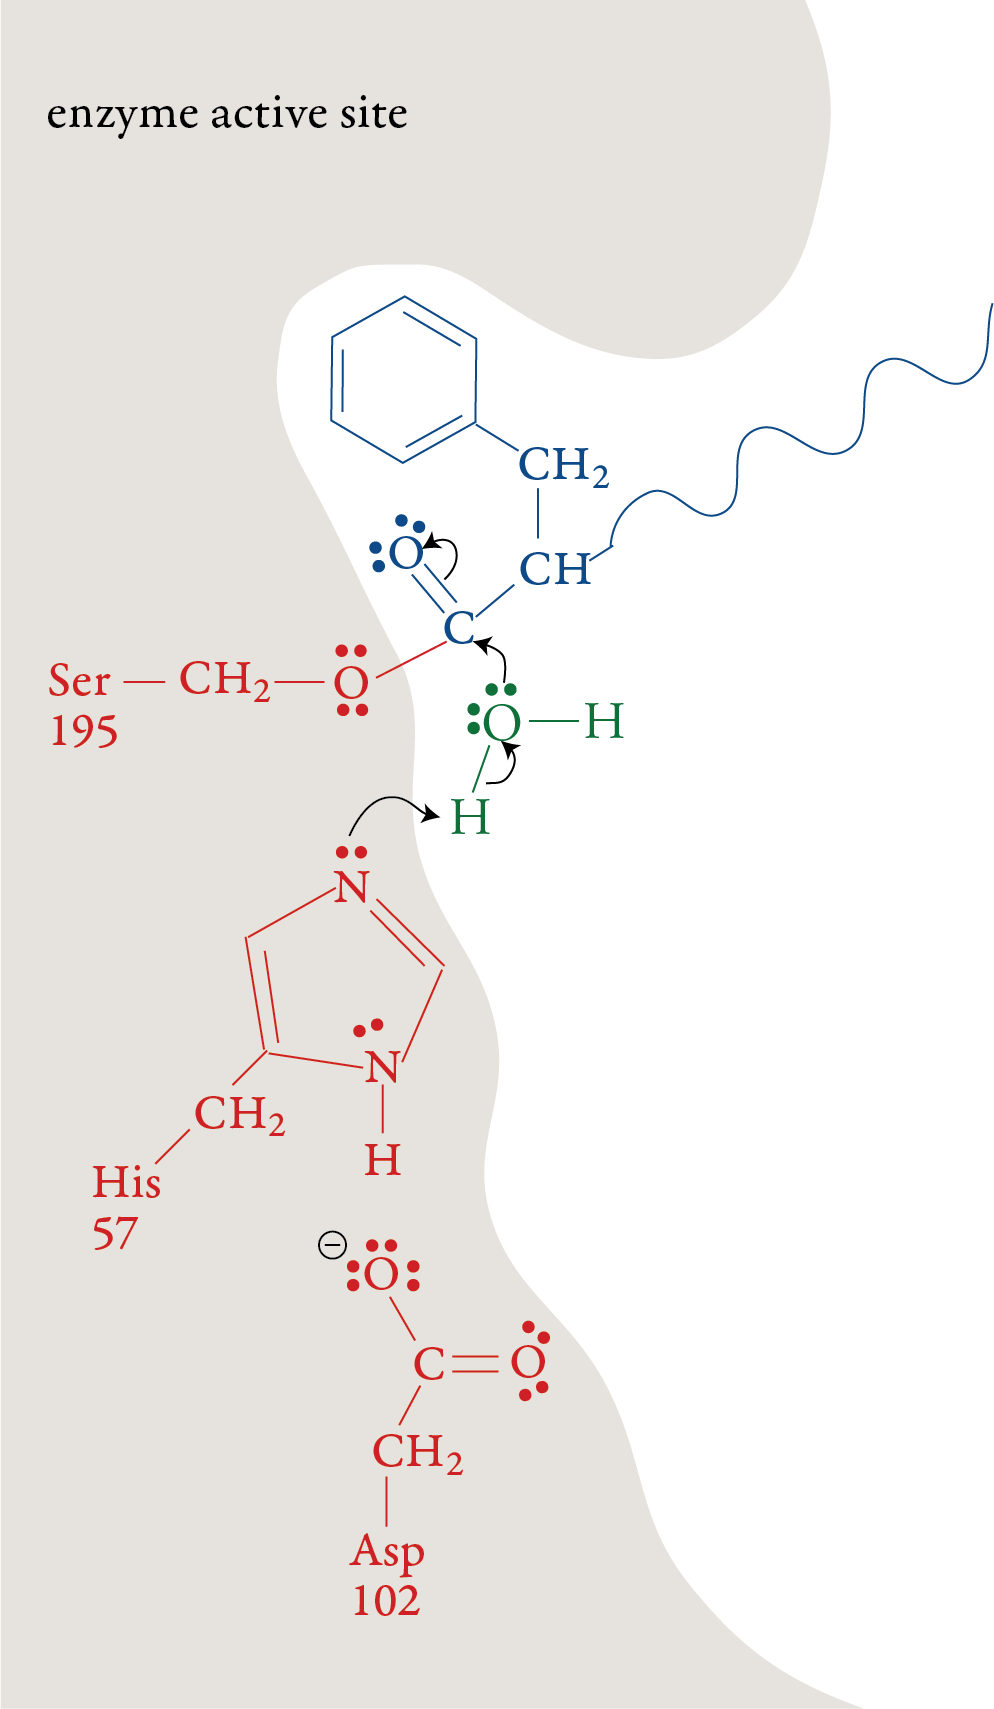 Image of the fourth step in the chymotrypsin mechanism